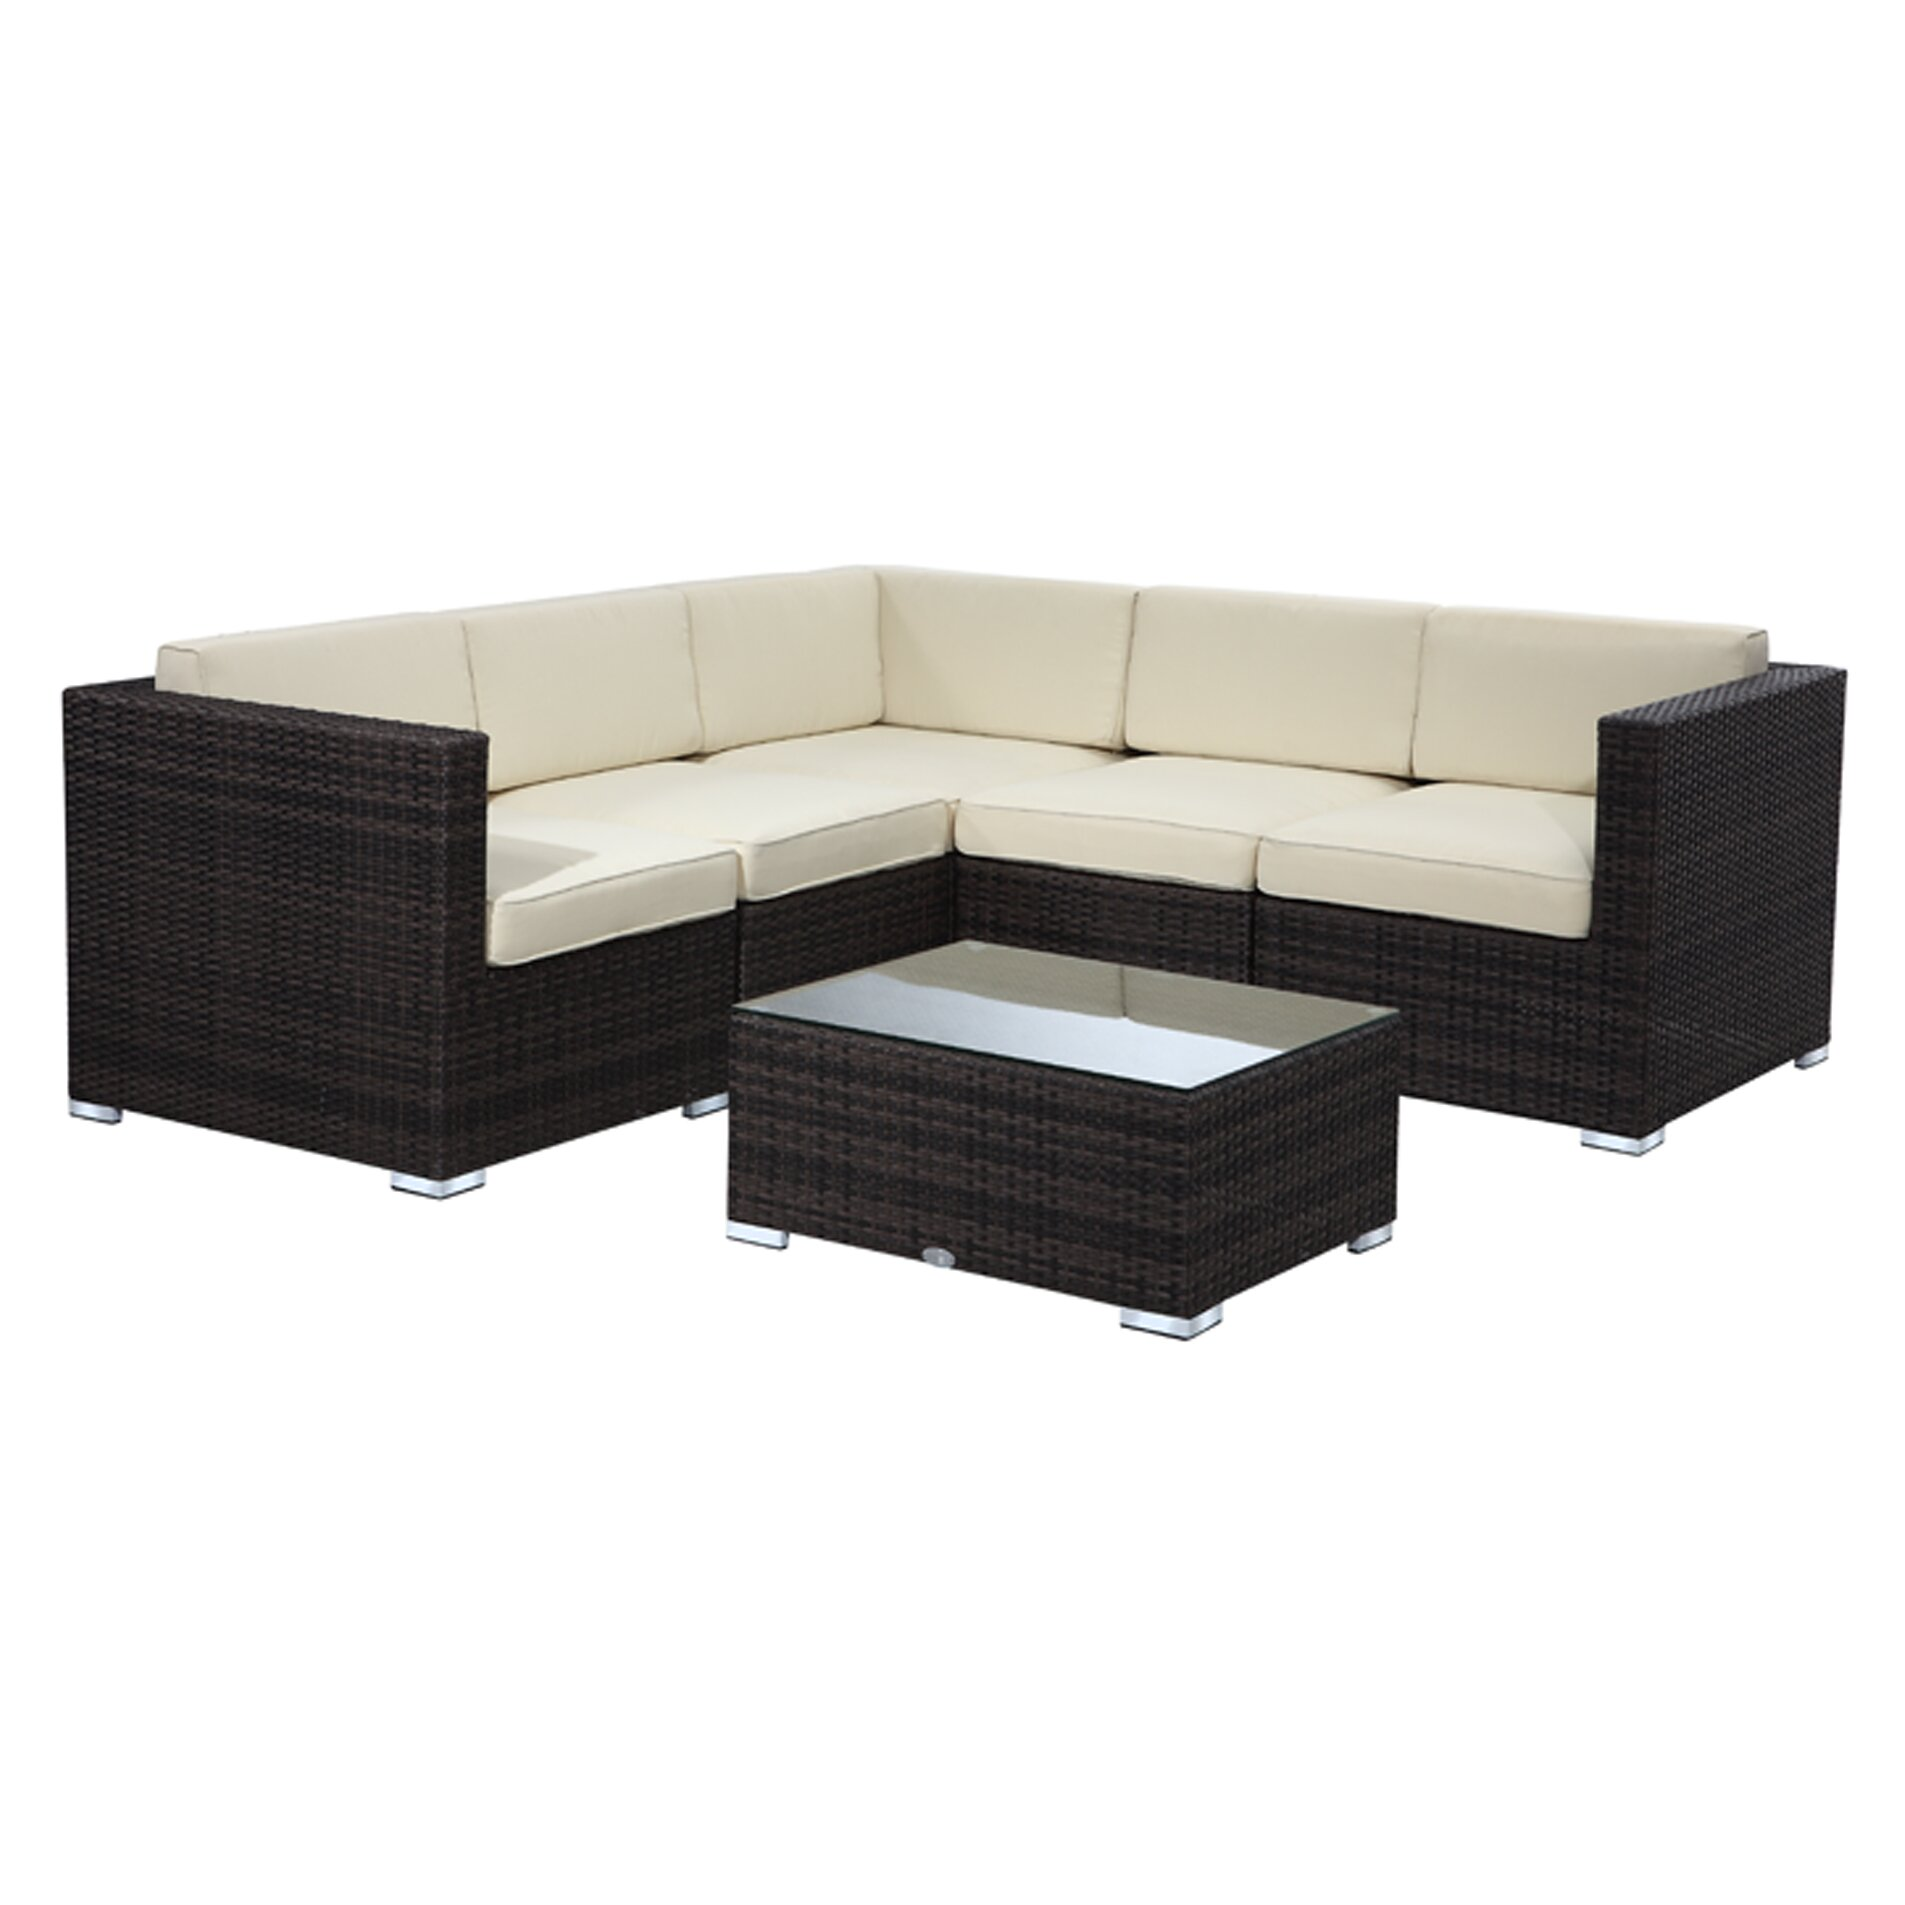 Rattan outdoor furniture brighton 6 piece sectional for Outdoor furniture reviews